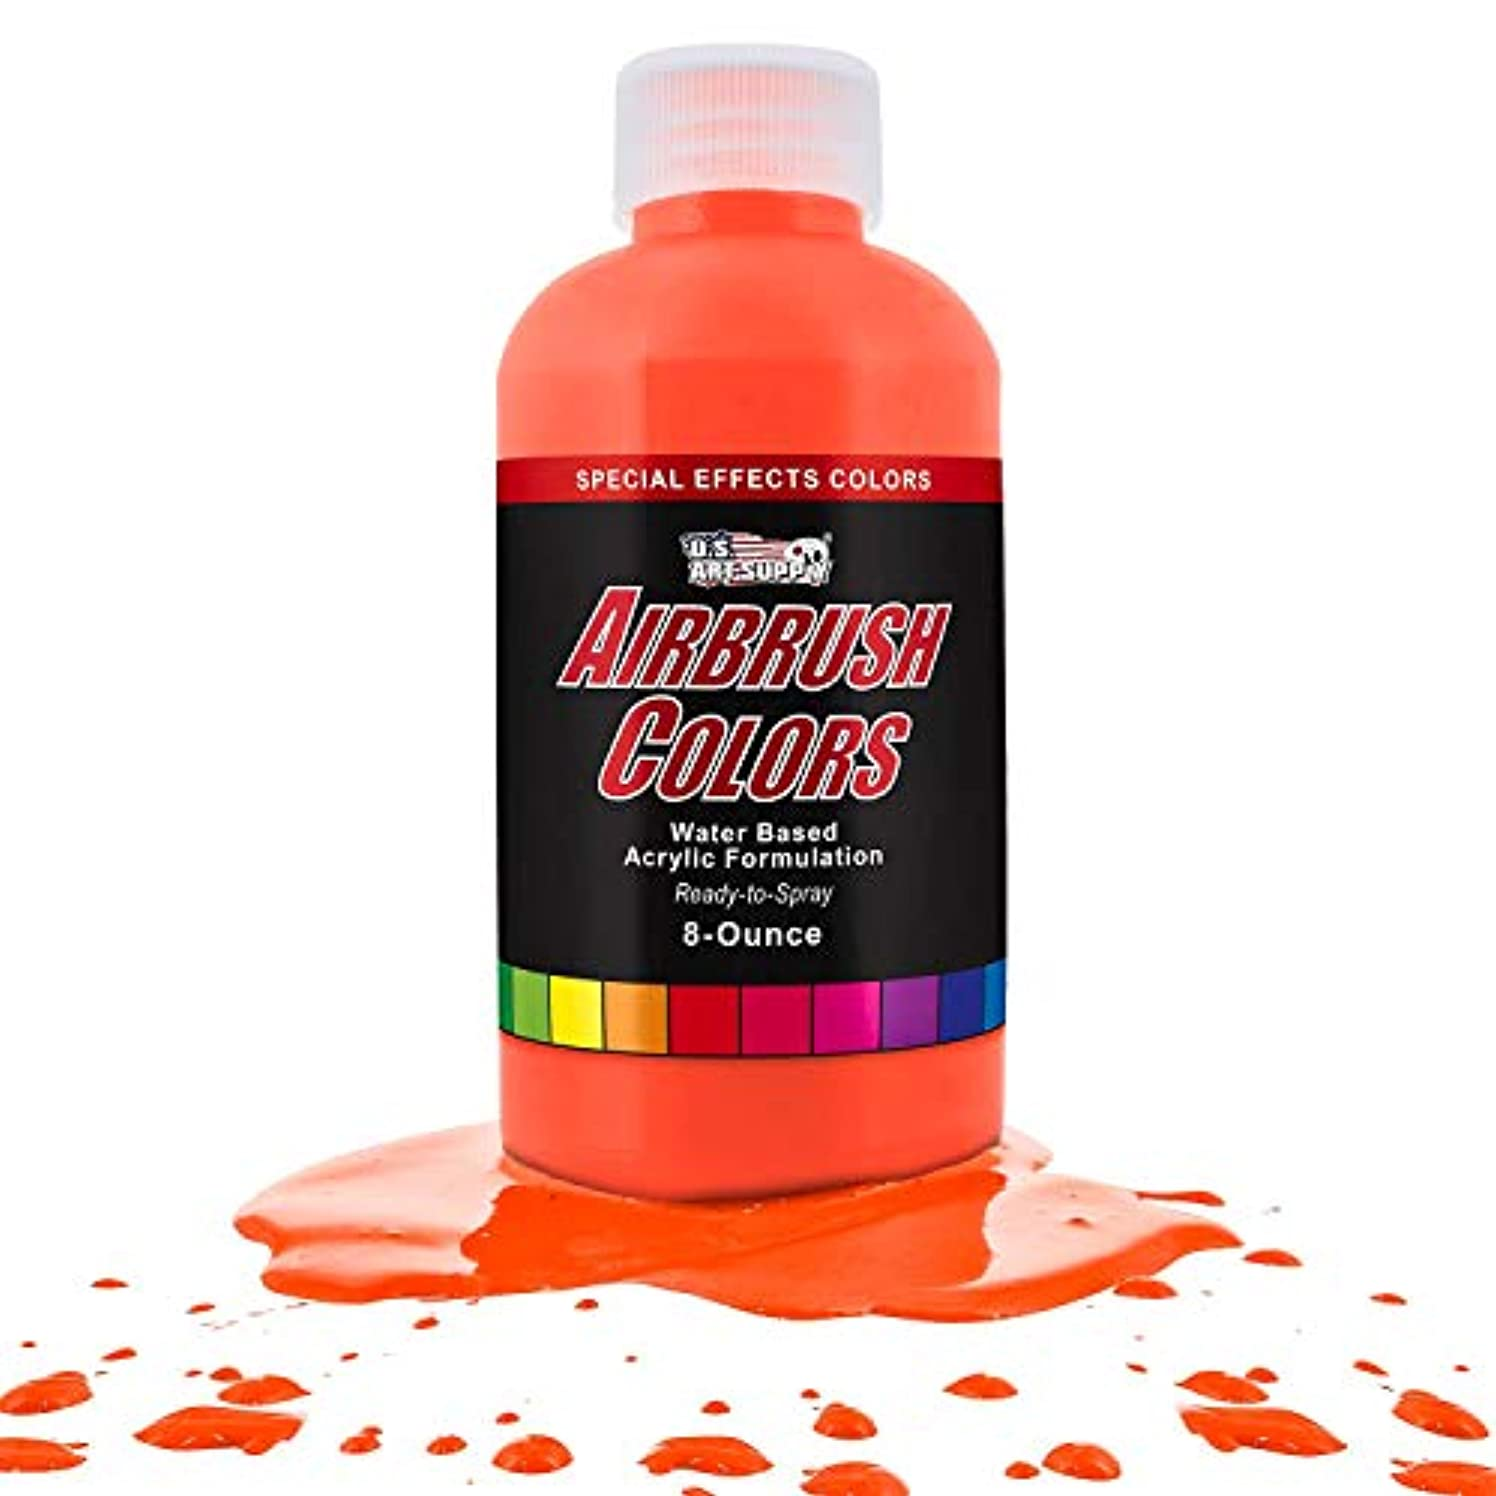 US Art Supply Neon Orange Fluorescent Special Effects Acrylic Airbrush Paint 8 oz.